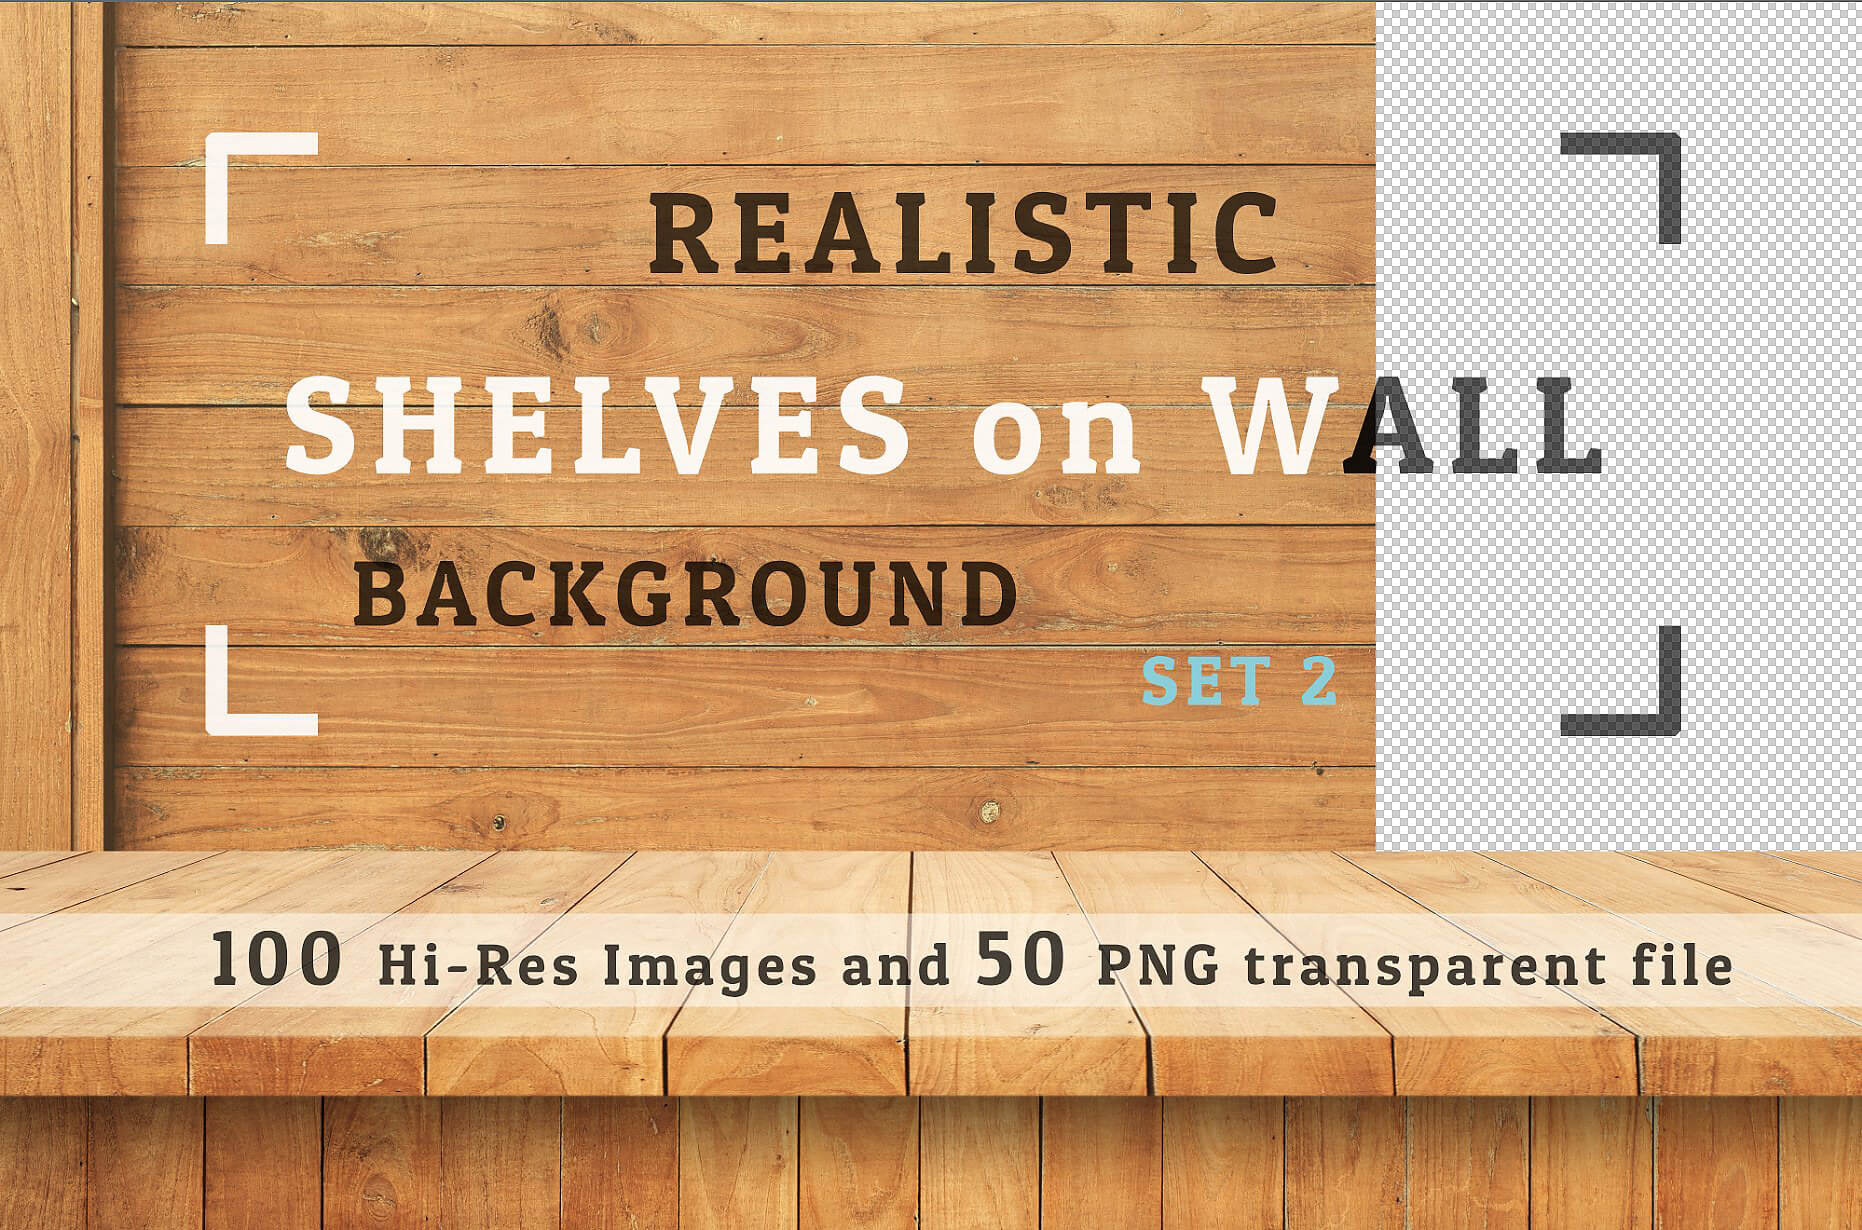 100-2-realistic-shelves-and-wall-background-set-2-cover-in-8-aug-2016